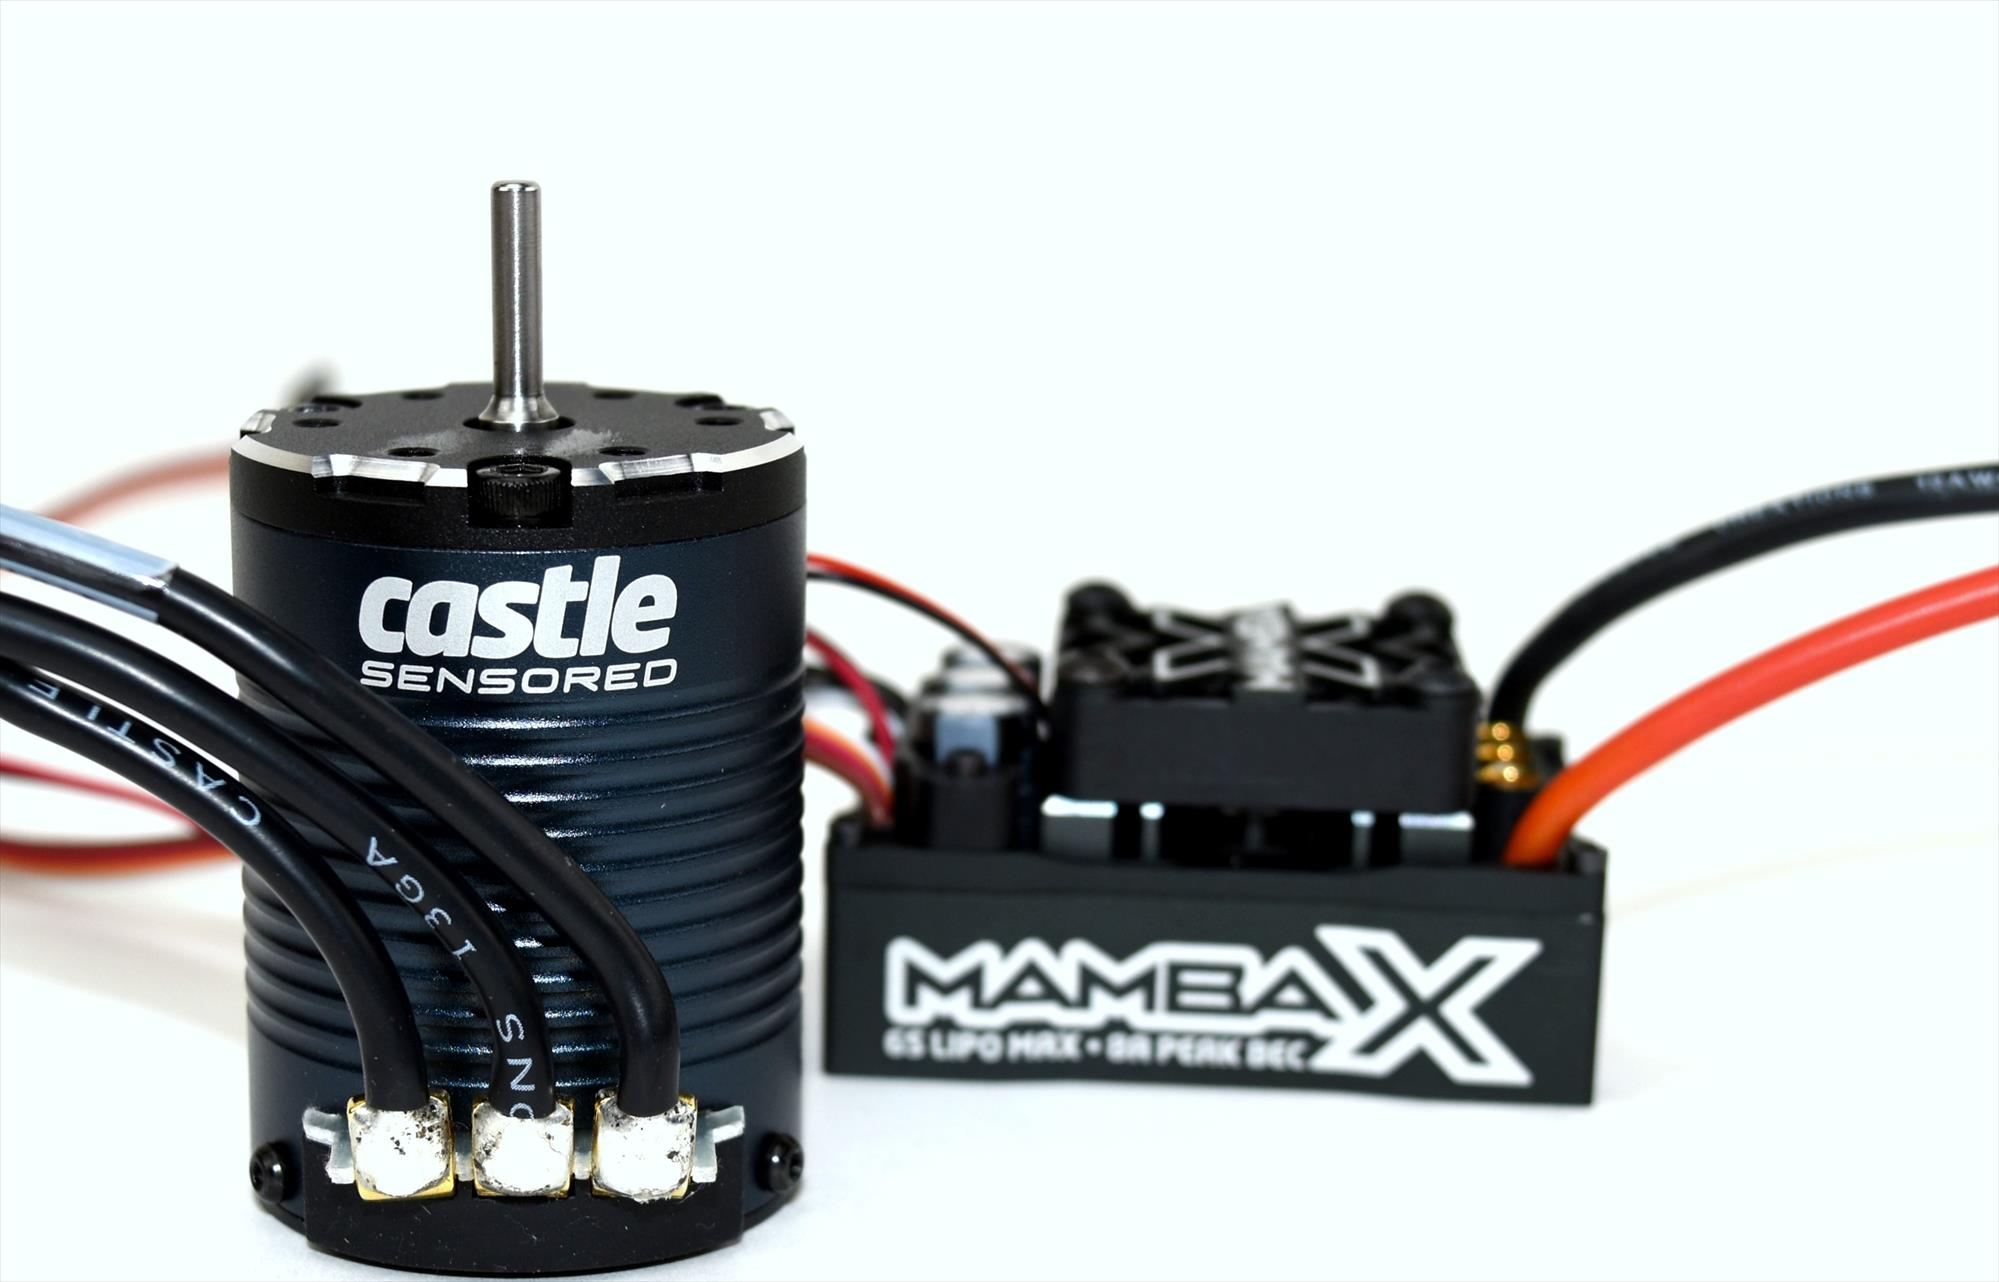 Castle Mamba X Sensored 25 2V WP ESC and 1406 2850kV Rock Crawler bo